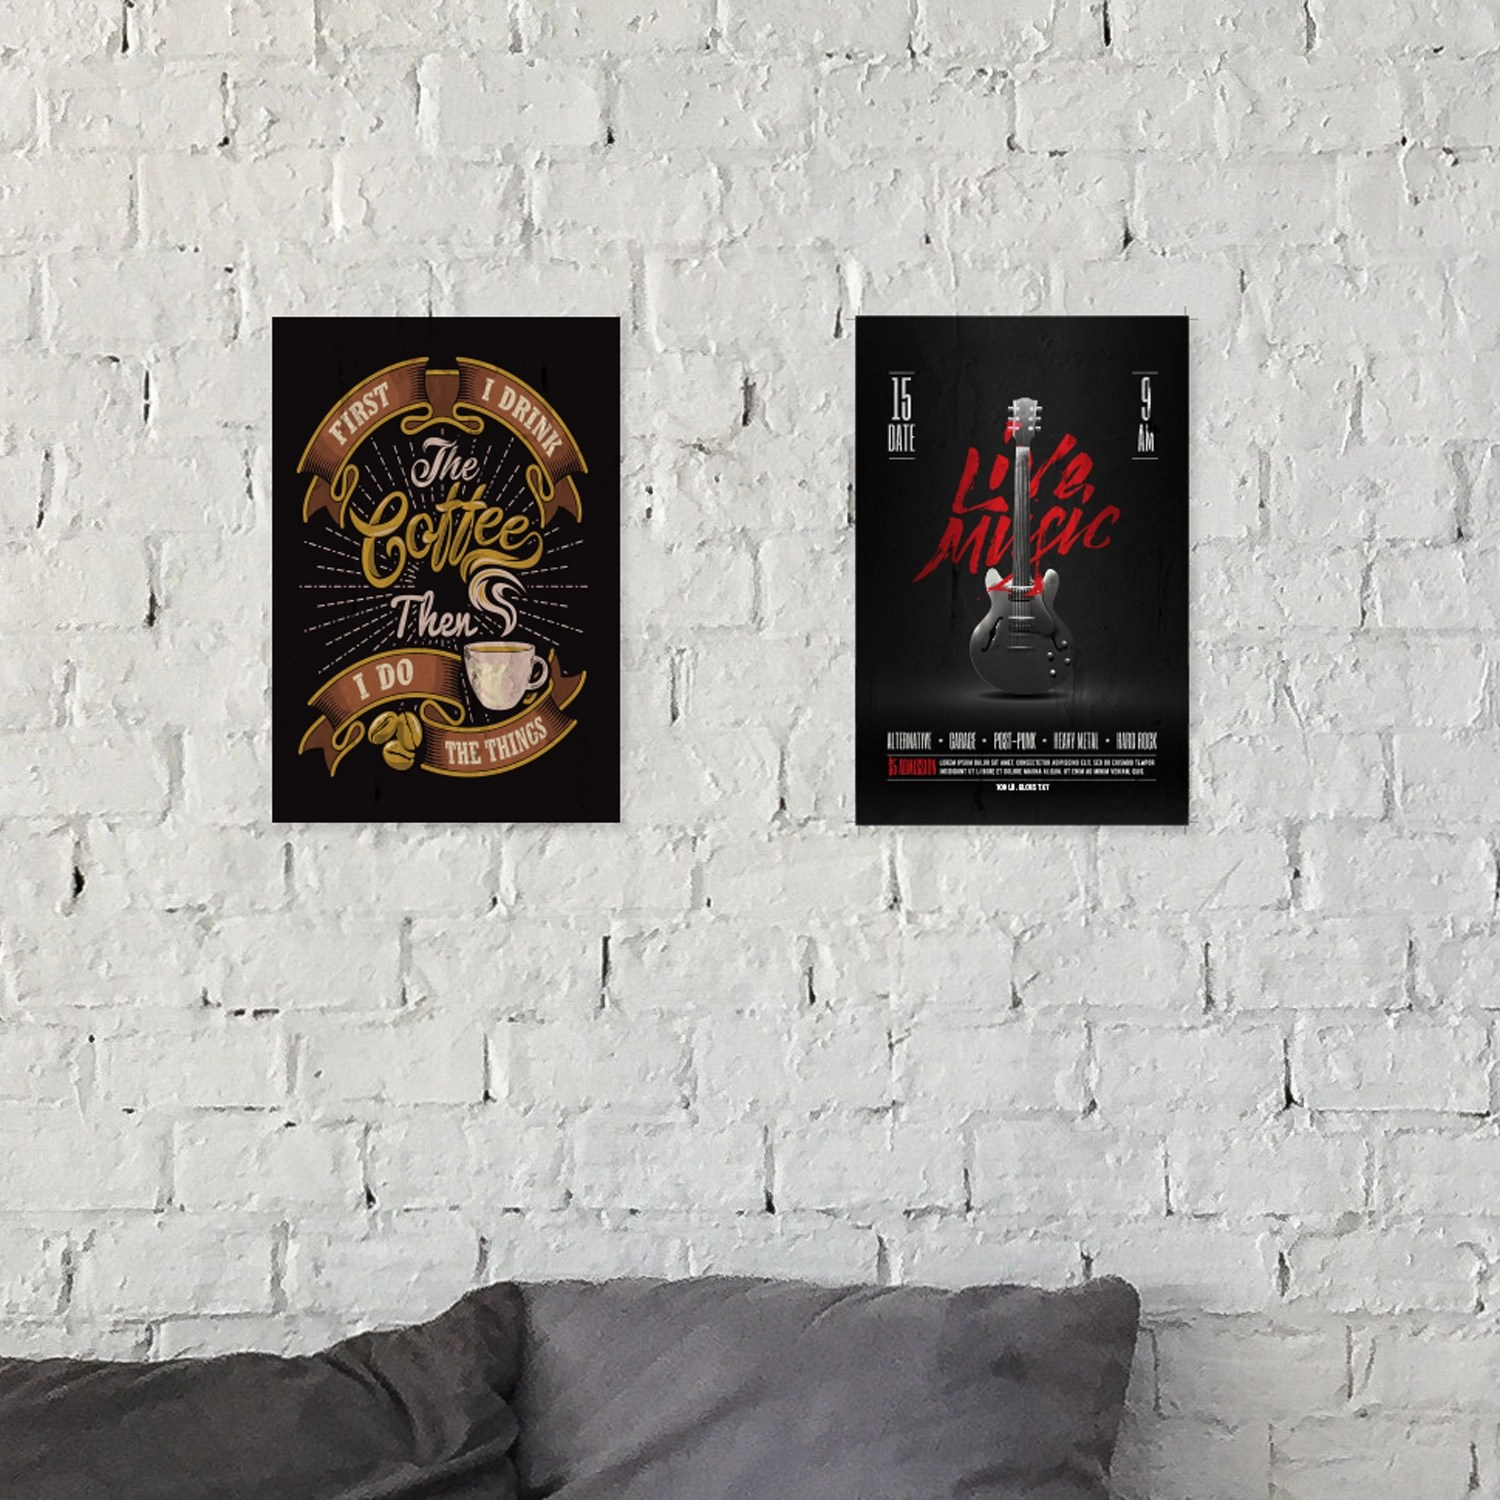 24 hour posters